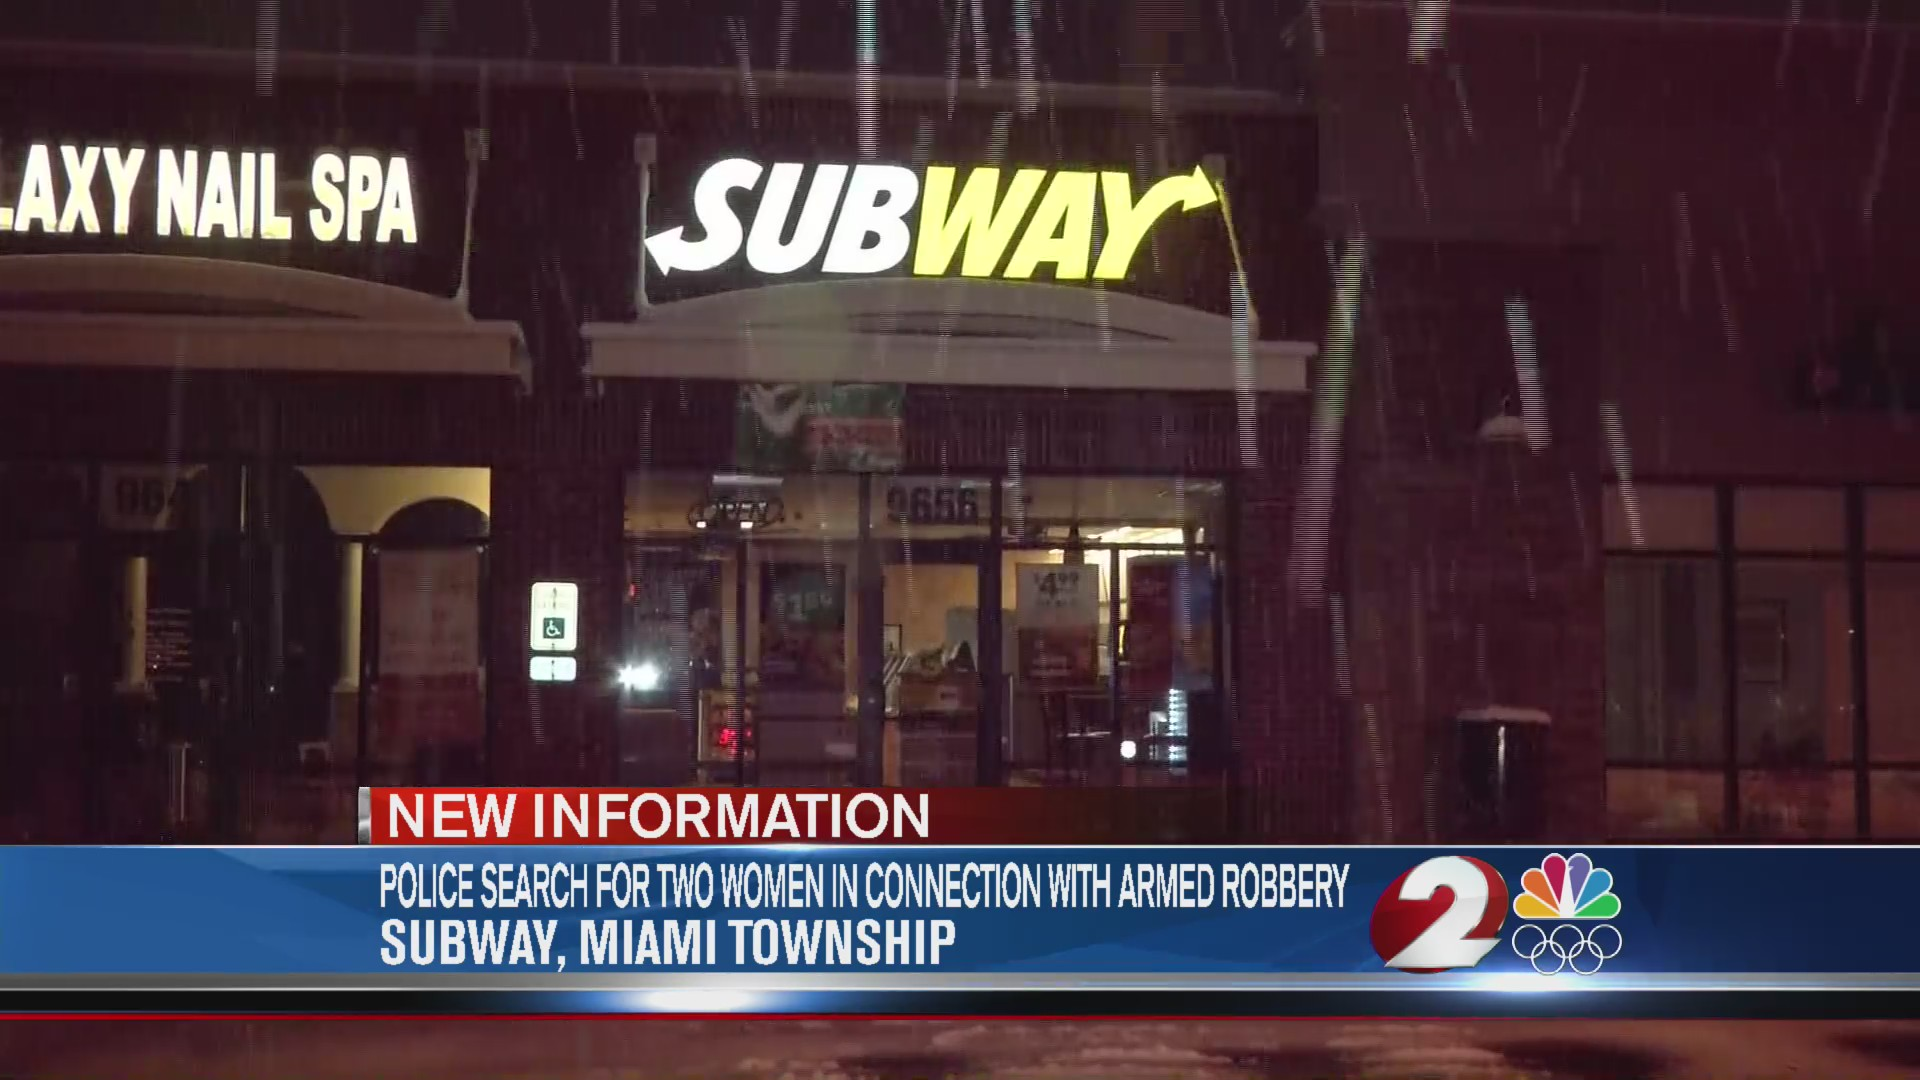 12-16 SUBWAY ROBBED